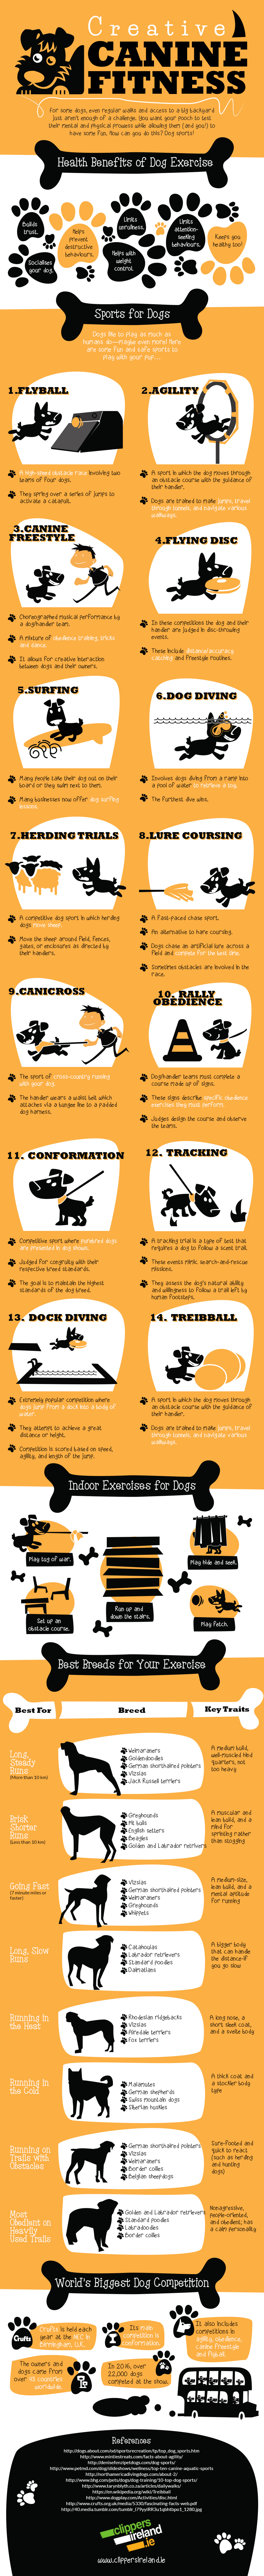 Dog_fitness_infographic